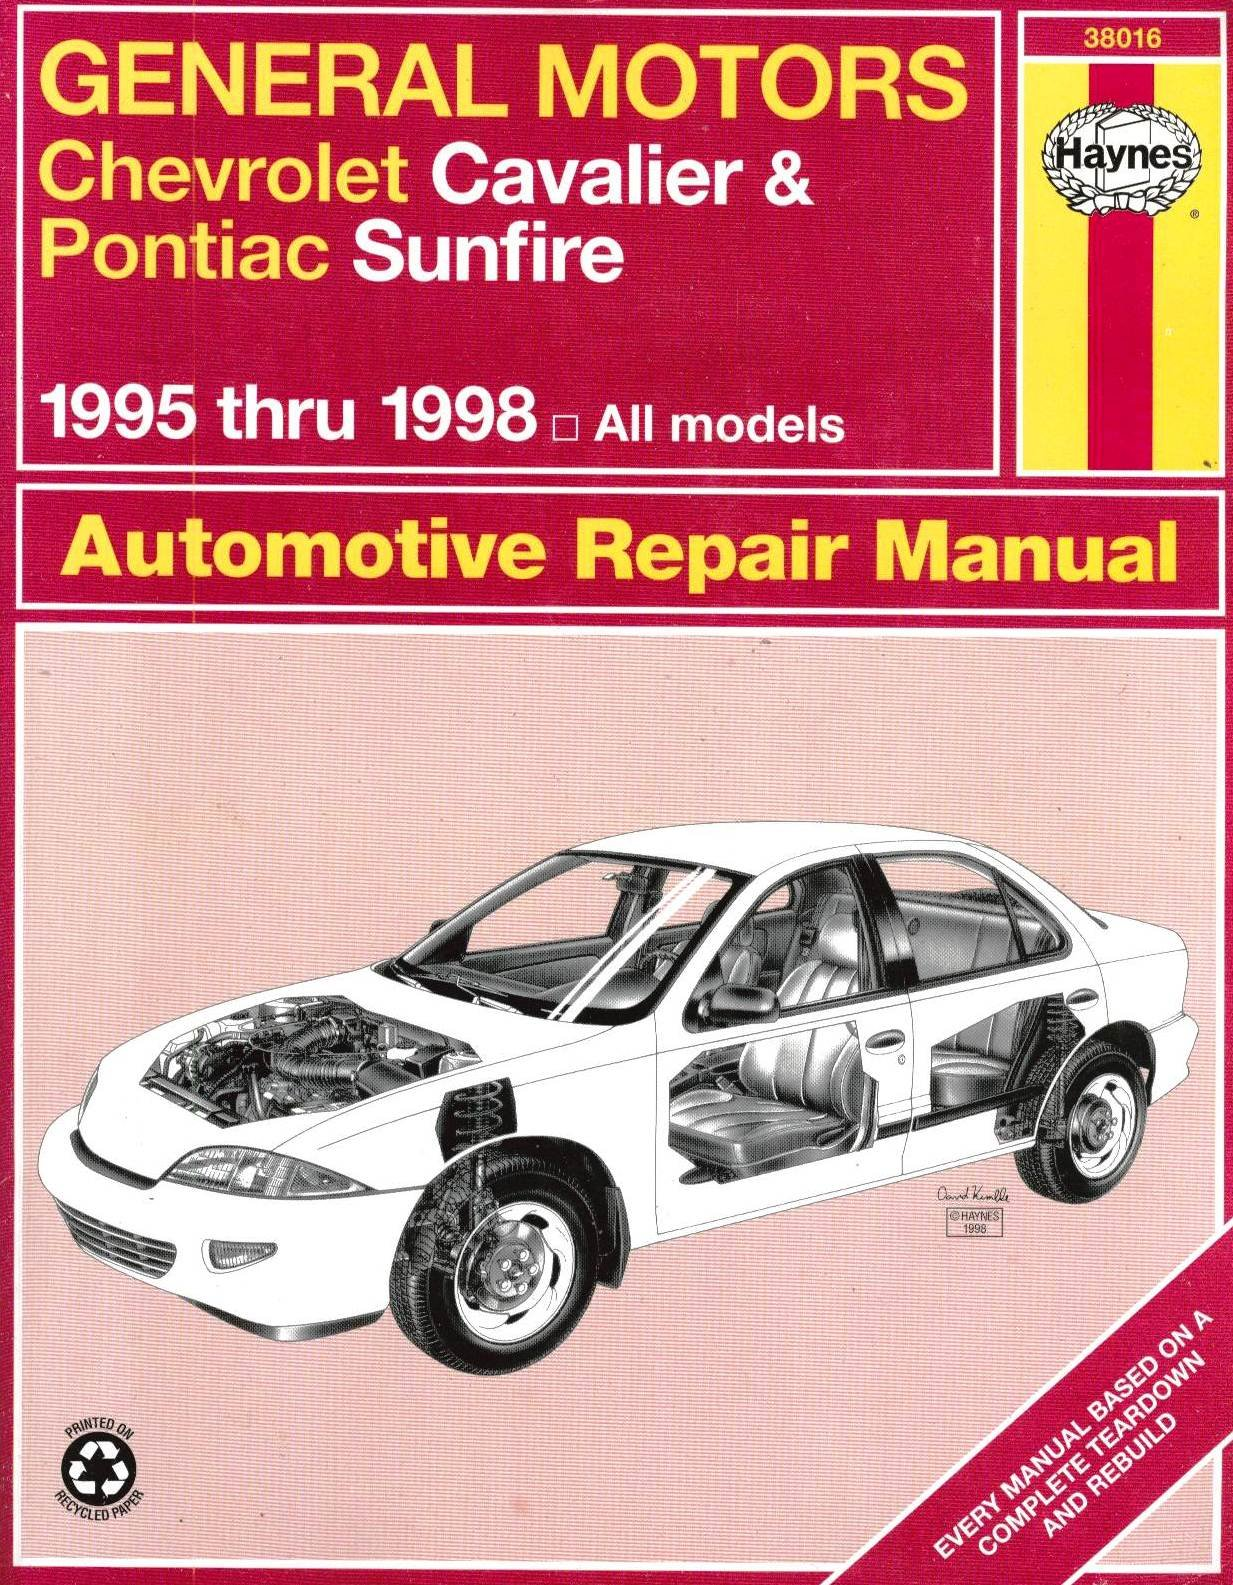 General Motors Chevrolet Cavalier and Pontiac Sunfire Automotive Repair  Manual: 1995 thru 1998 All Models (Haynes Automotive Repair Manual Series):  Robert ...